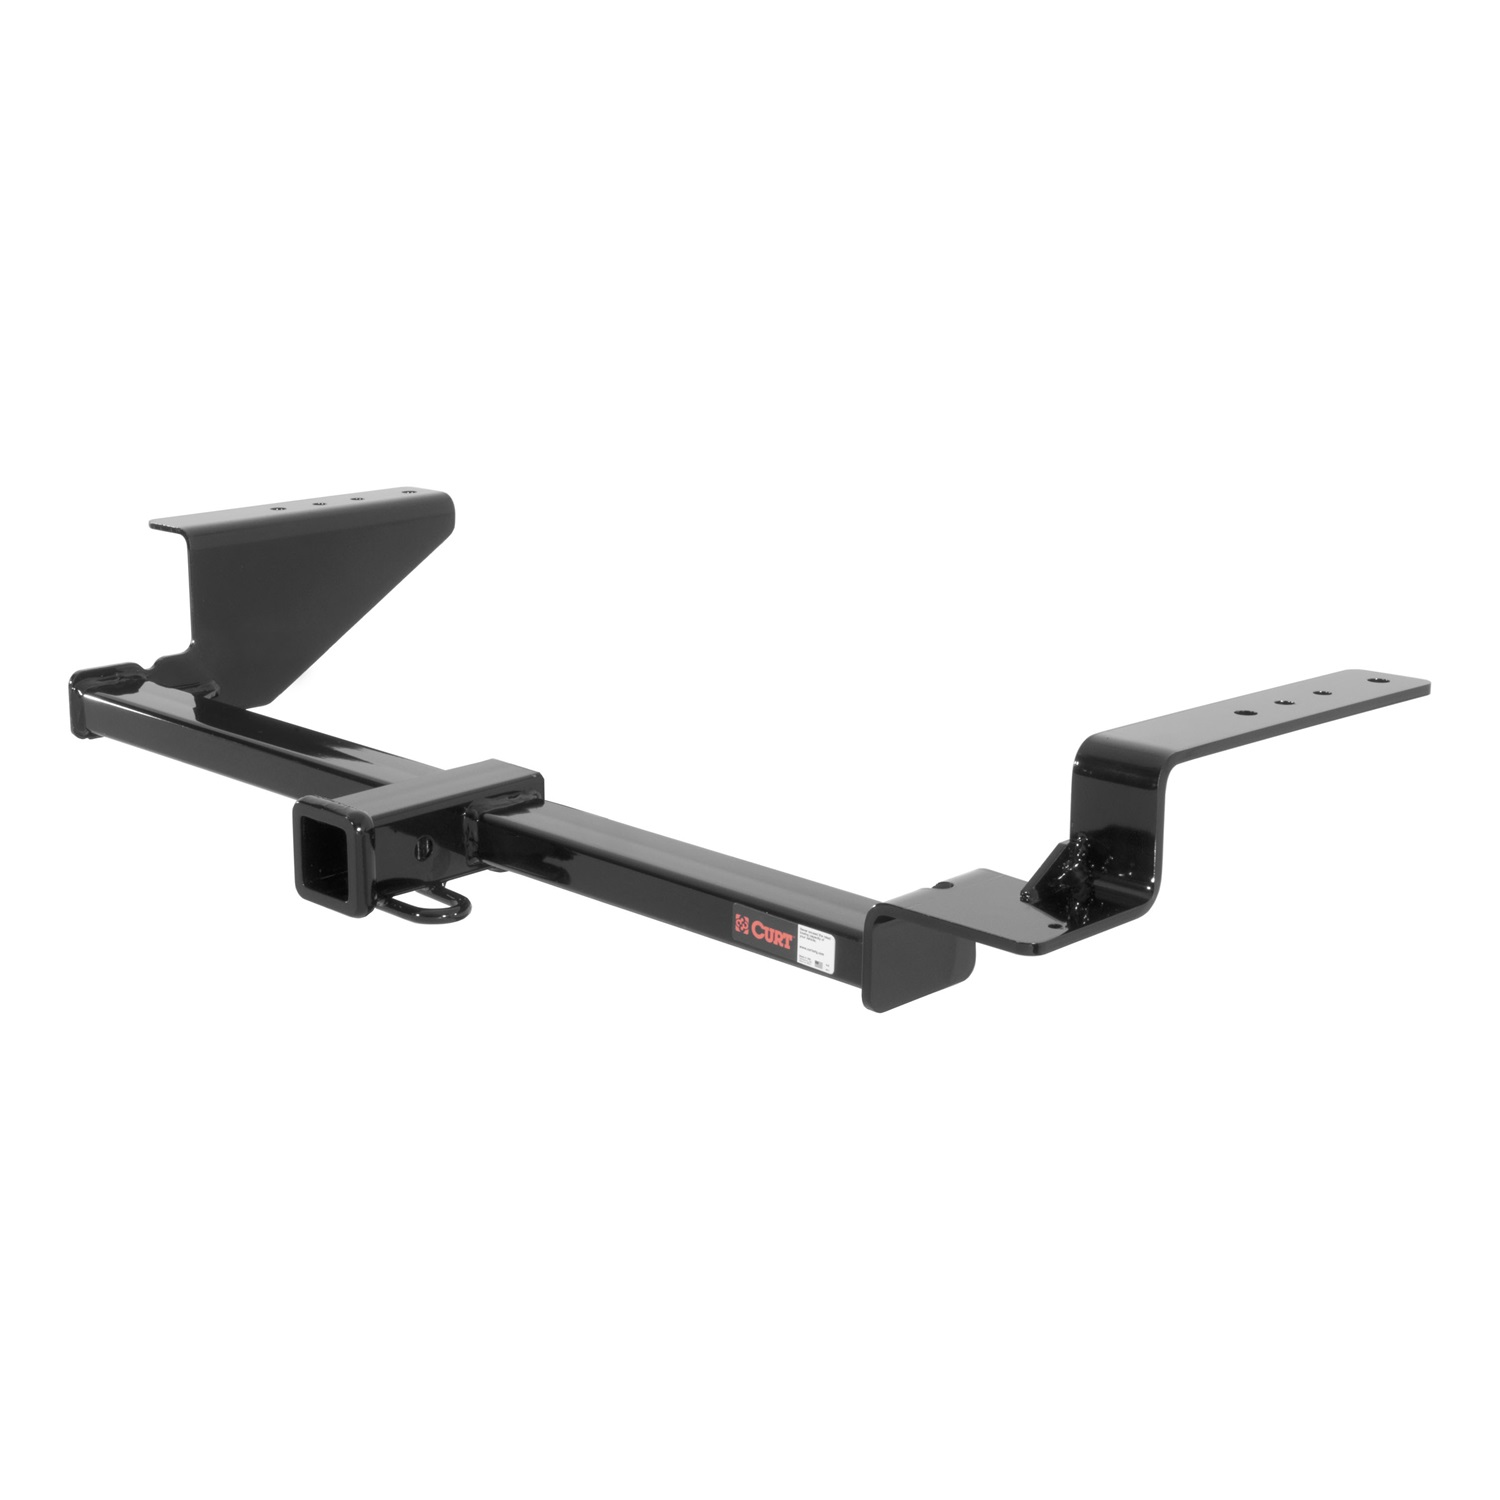 CURT Manufacturing 13535 Class III; 2 in. Receiver Hitch 02-06 CR-V at Sears.com